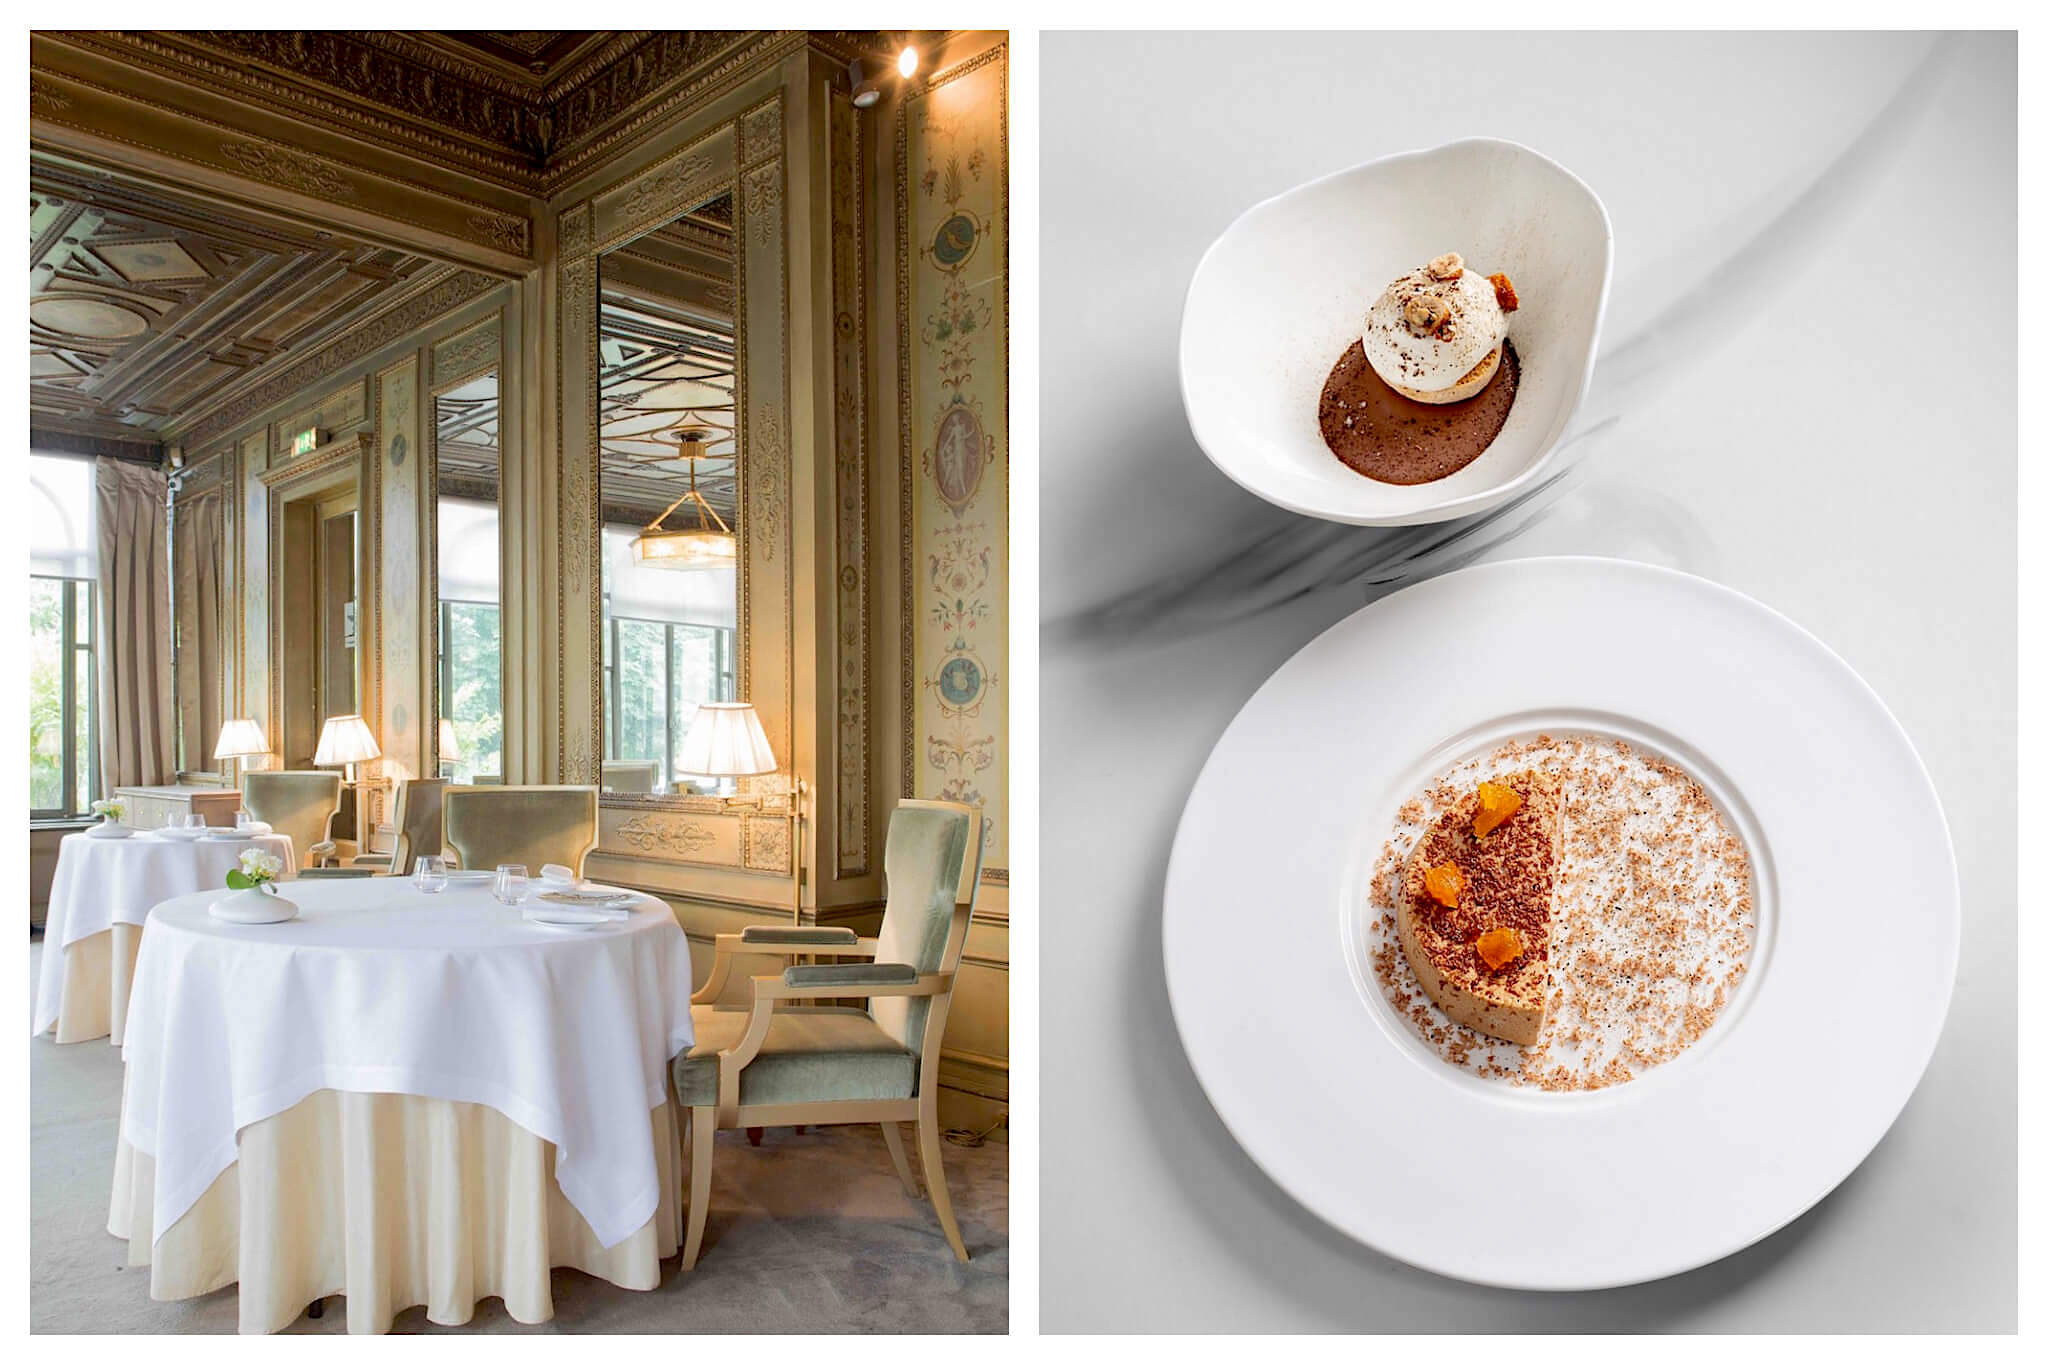 Left: The inside of Pavyllon restaurant on the Champs Elysées. Large mirrors are hung on the walls, and large circular tables are covered with tablecloths, Right: A bowl and plate of desserts sit side by side at Pavyllon restaurant